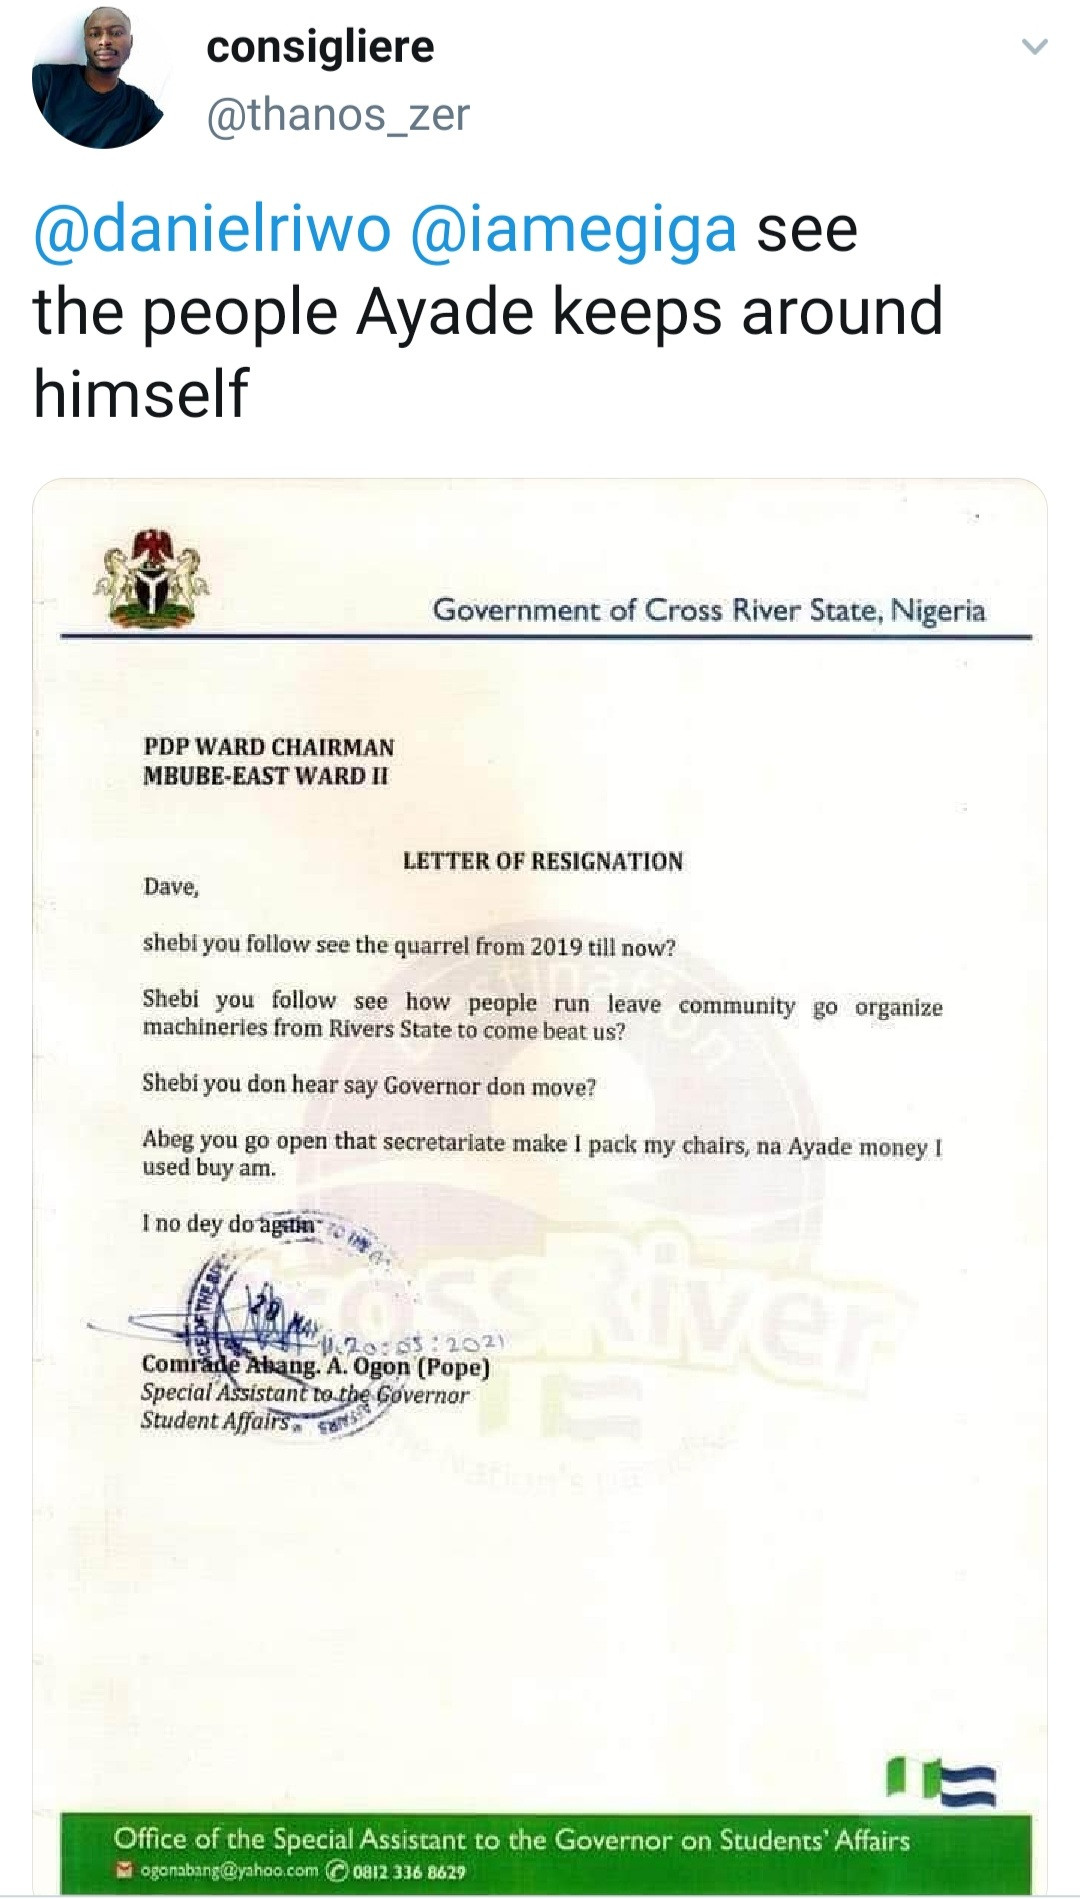 """""""I no dey do again"""" SA to the Cross River State Governor on Student Affairs, Abang Ogon, furiously resigns with letter written in Pidgin English after Ayade"""